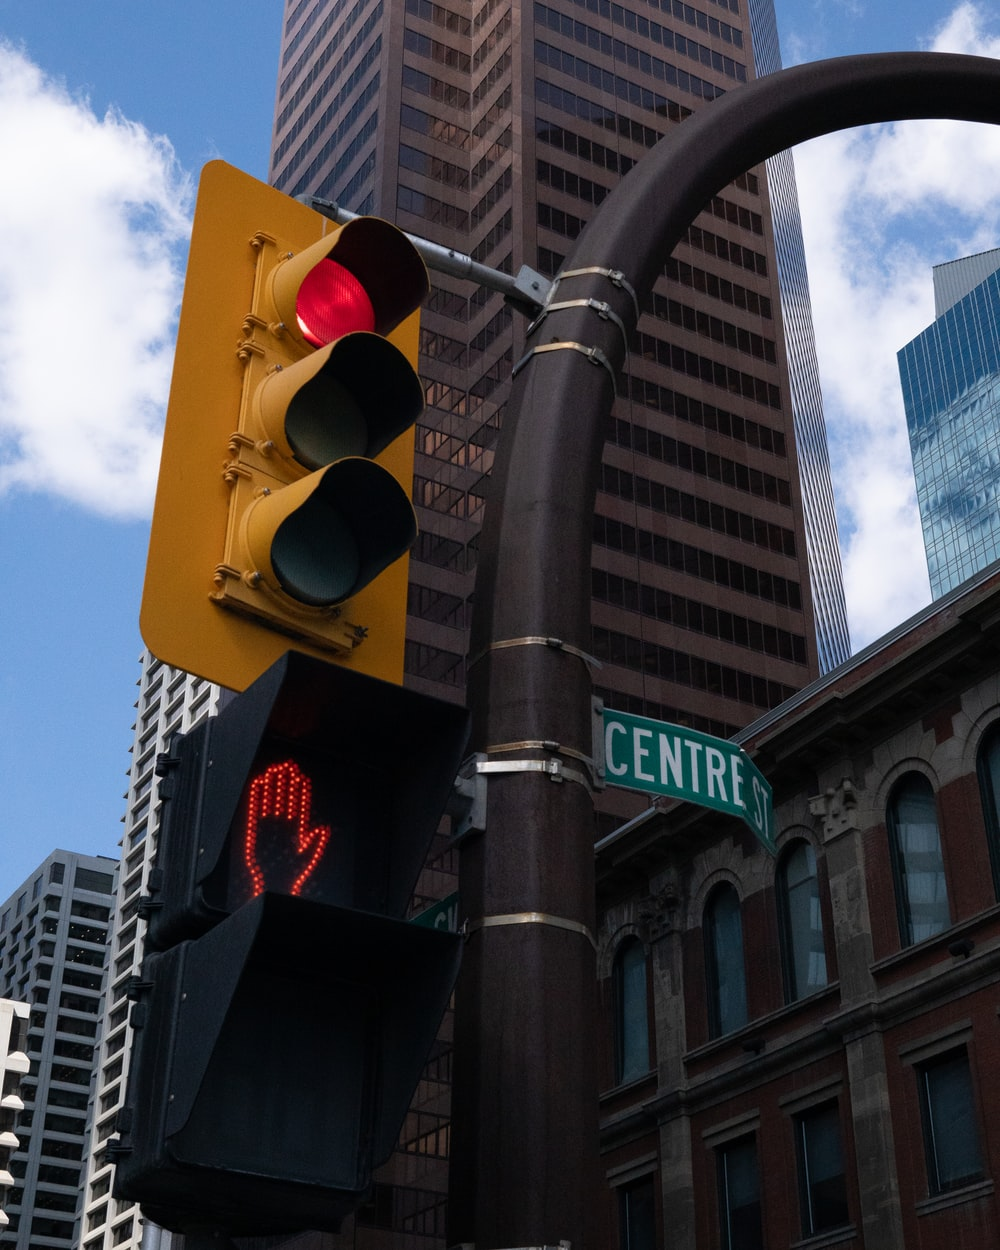 yellow and black traffic light during daytime